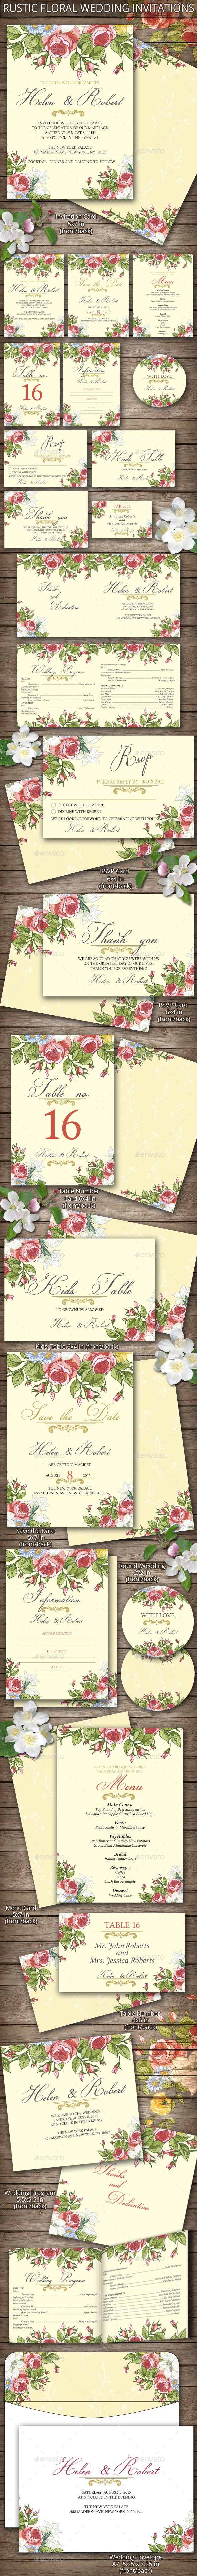 GraphicRiver Rustic Floral Wedding Invitations 11401038